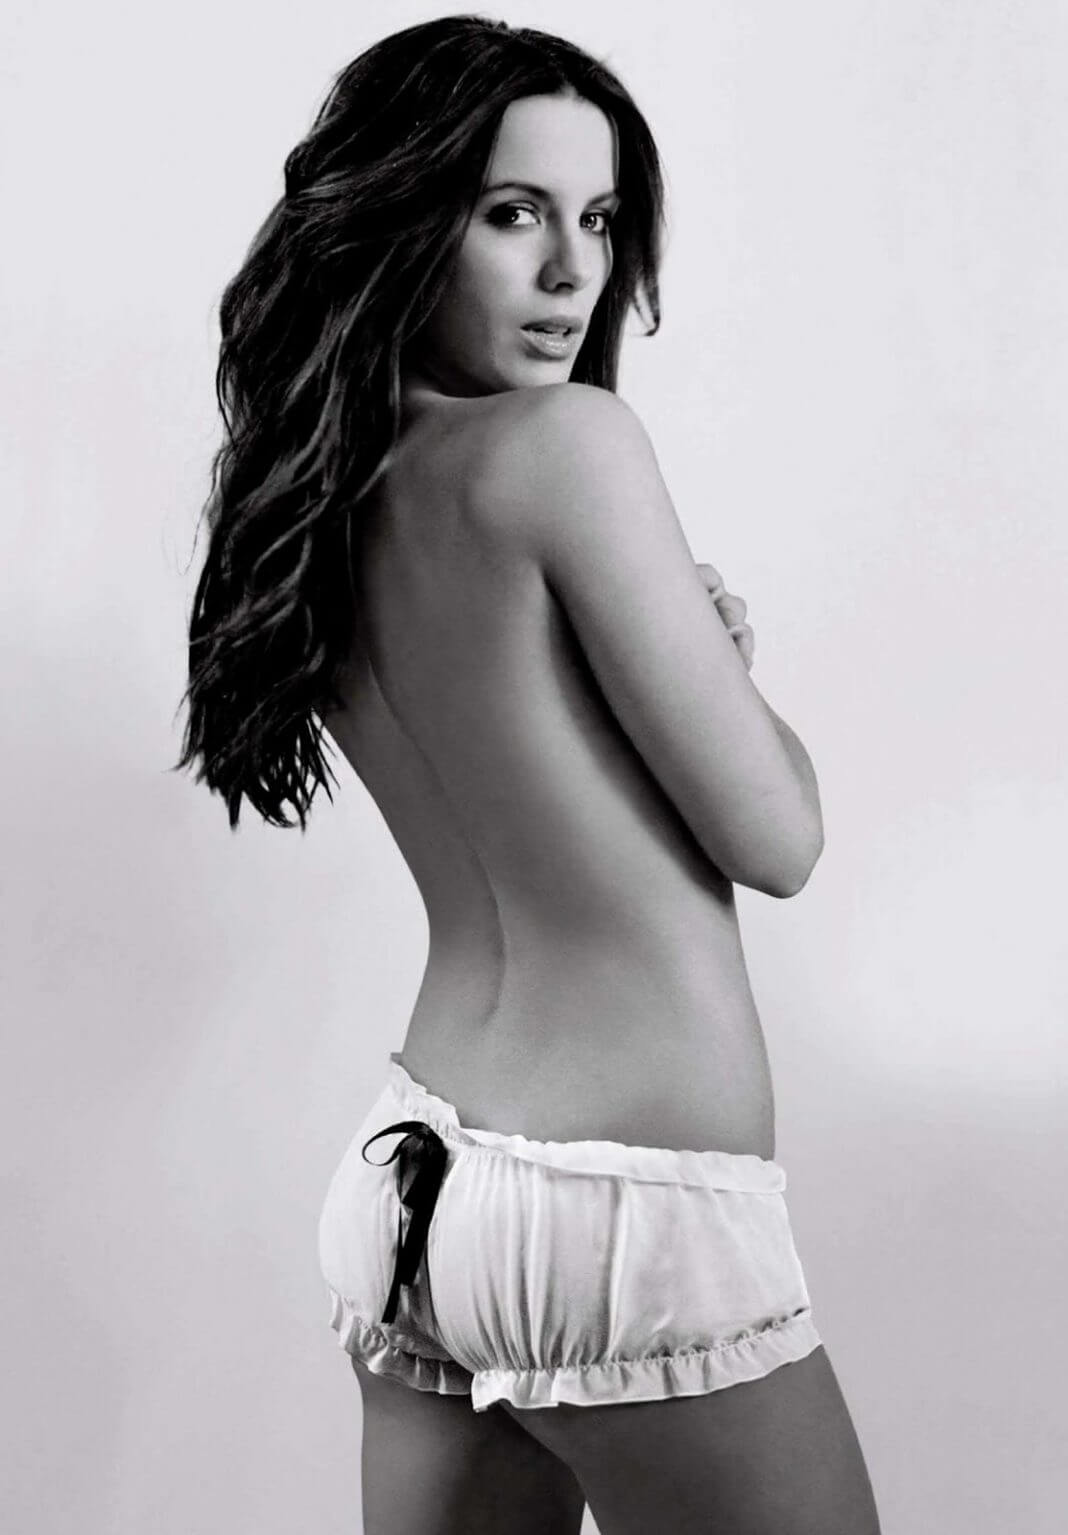 kate-beckinsale-topless-1068x1535